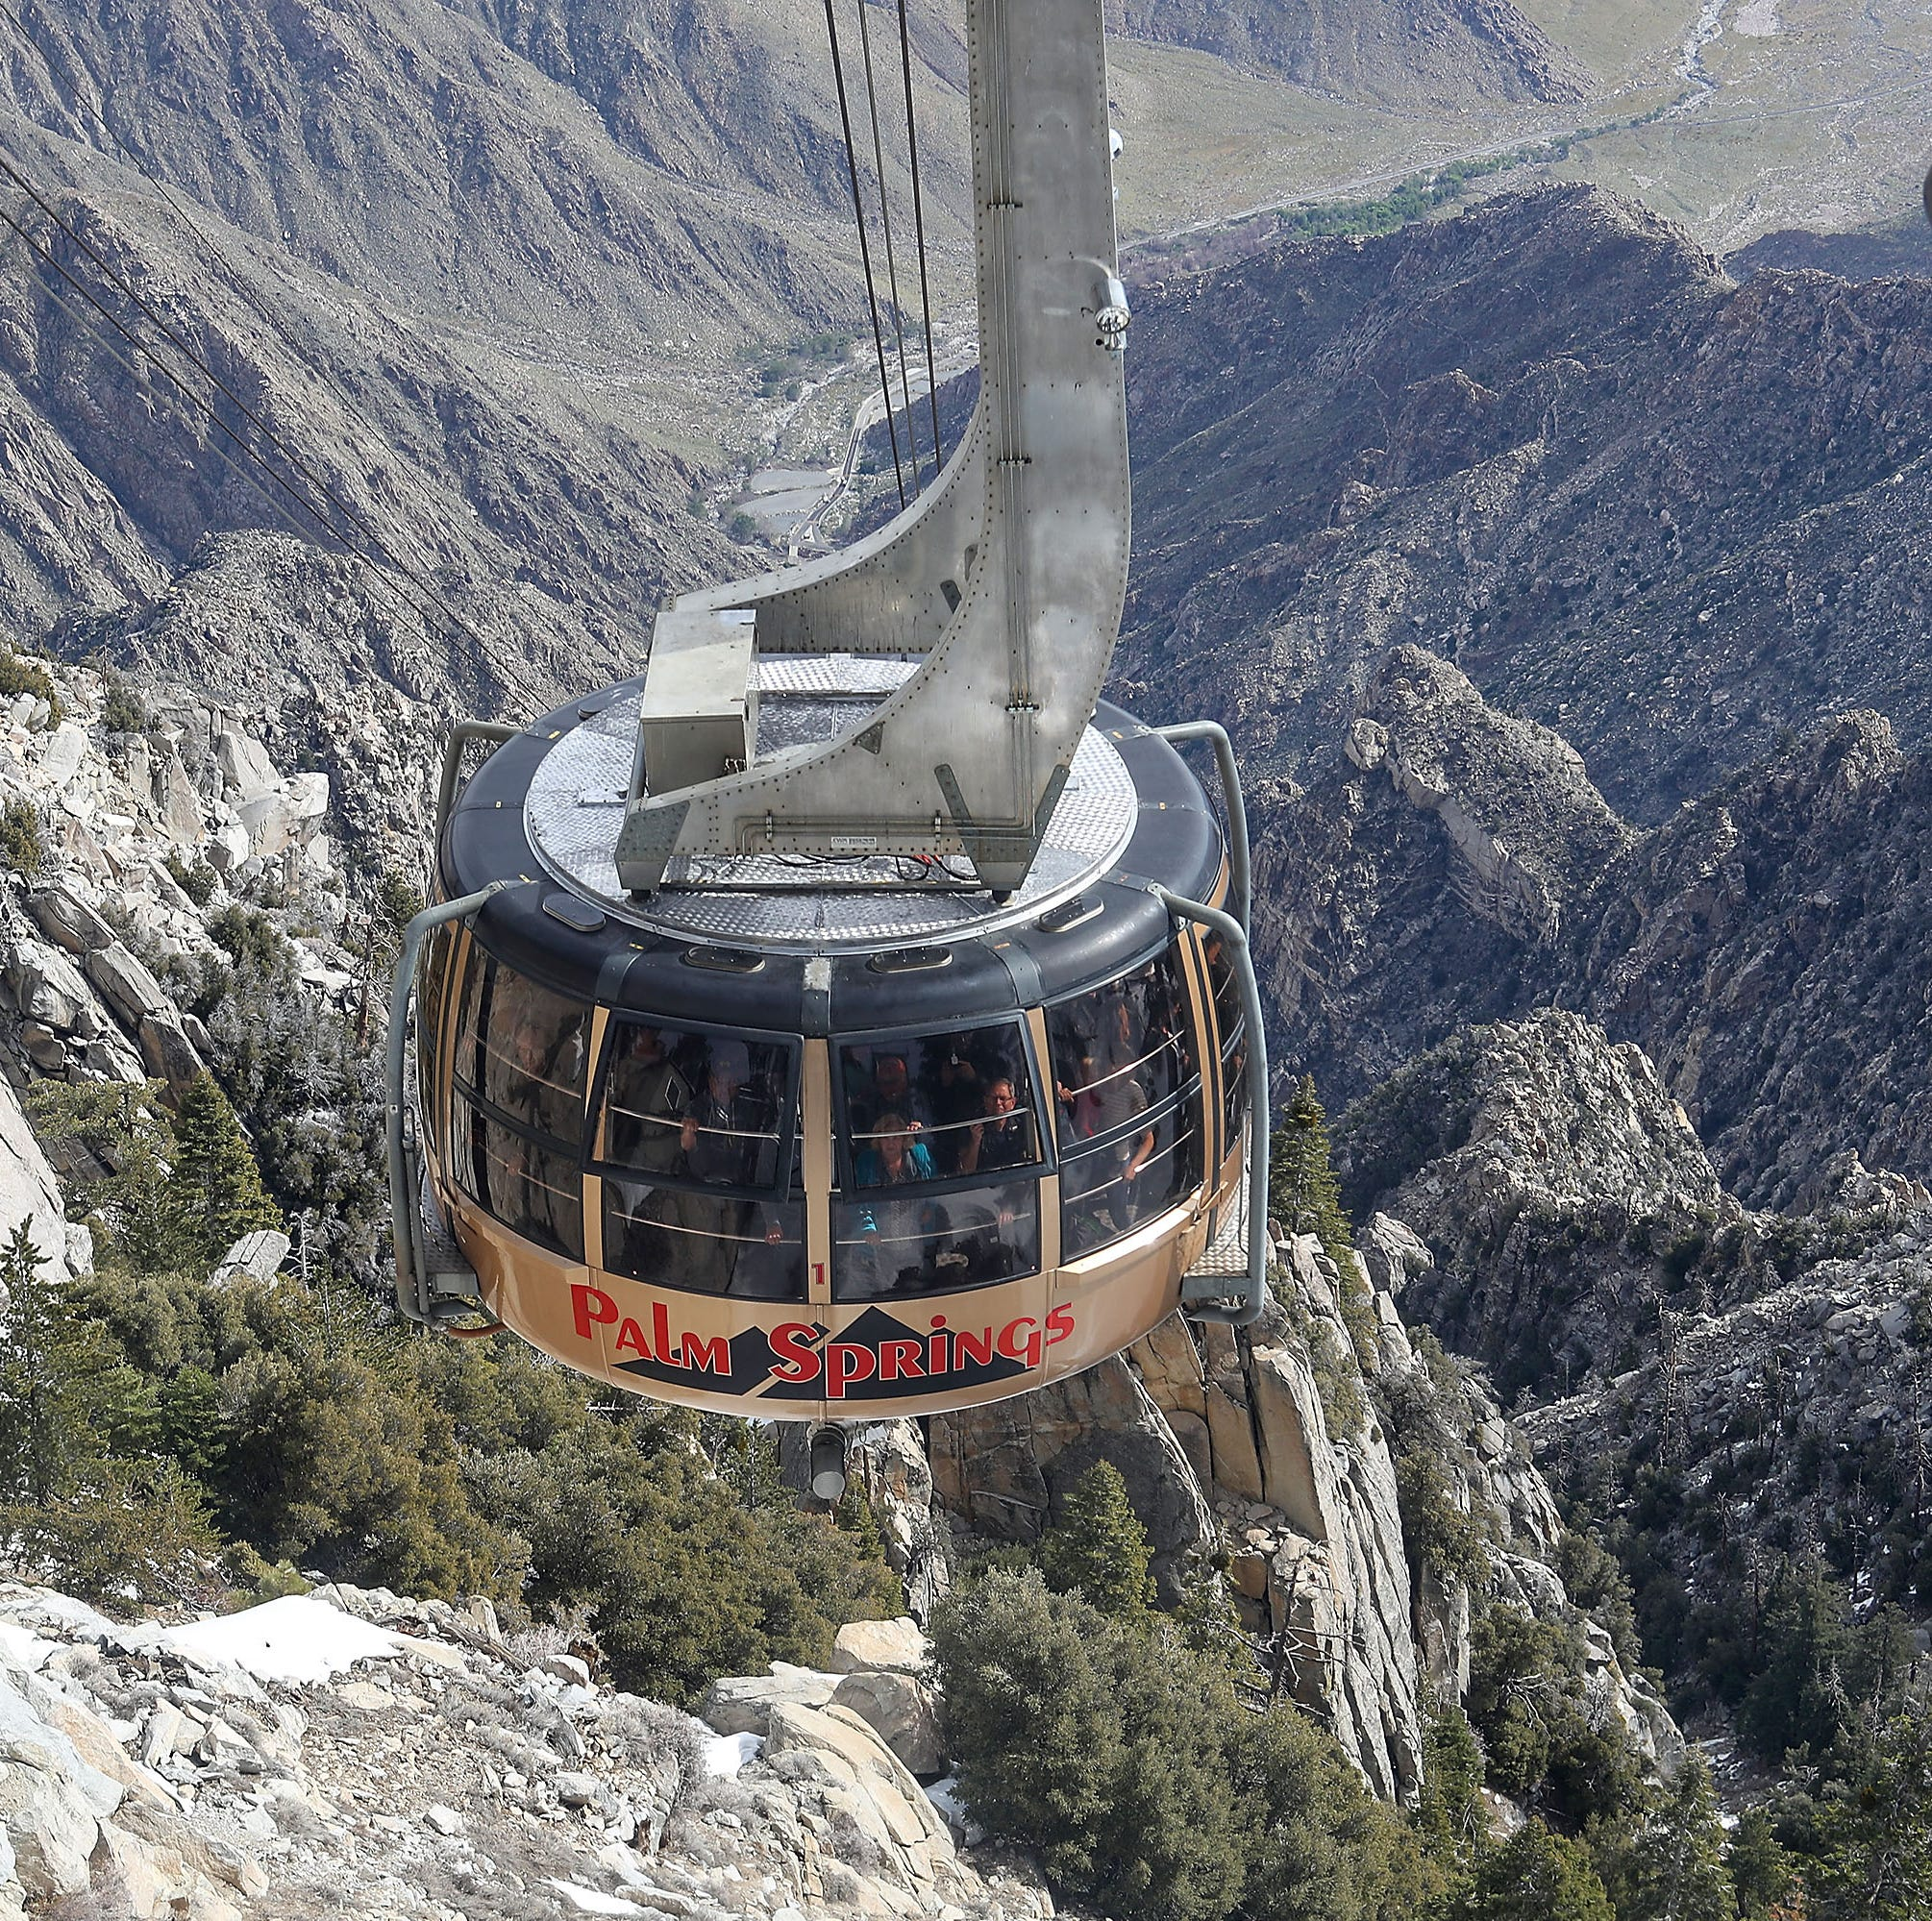 Palm Springs Aerial Tramway reopens after storm led to $4 million in lost revenue, repairs